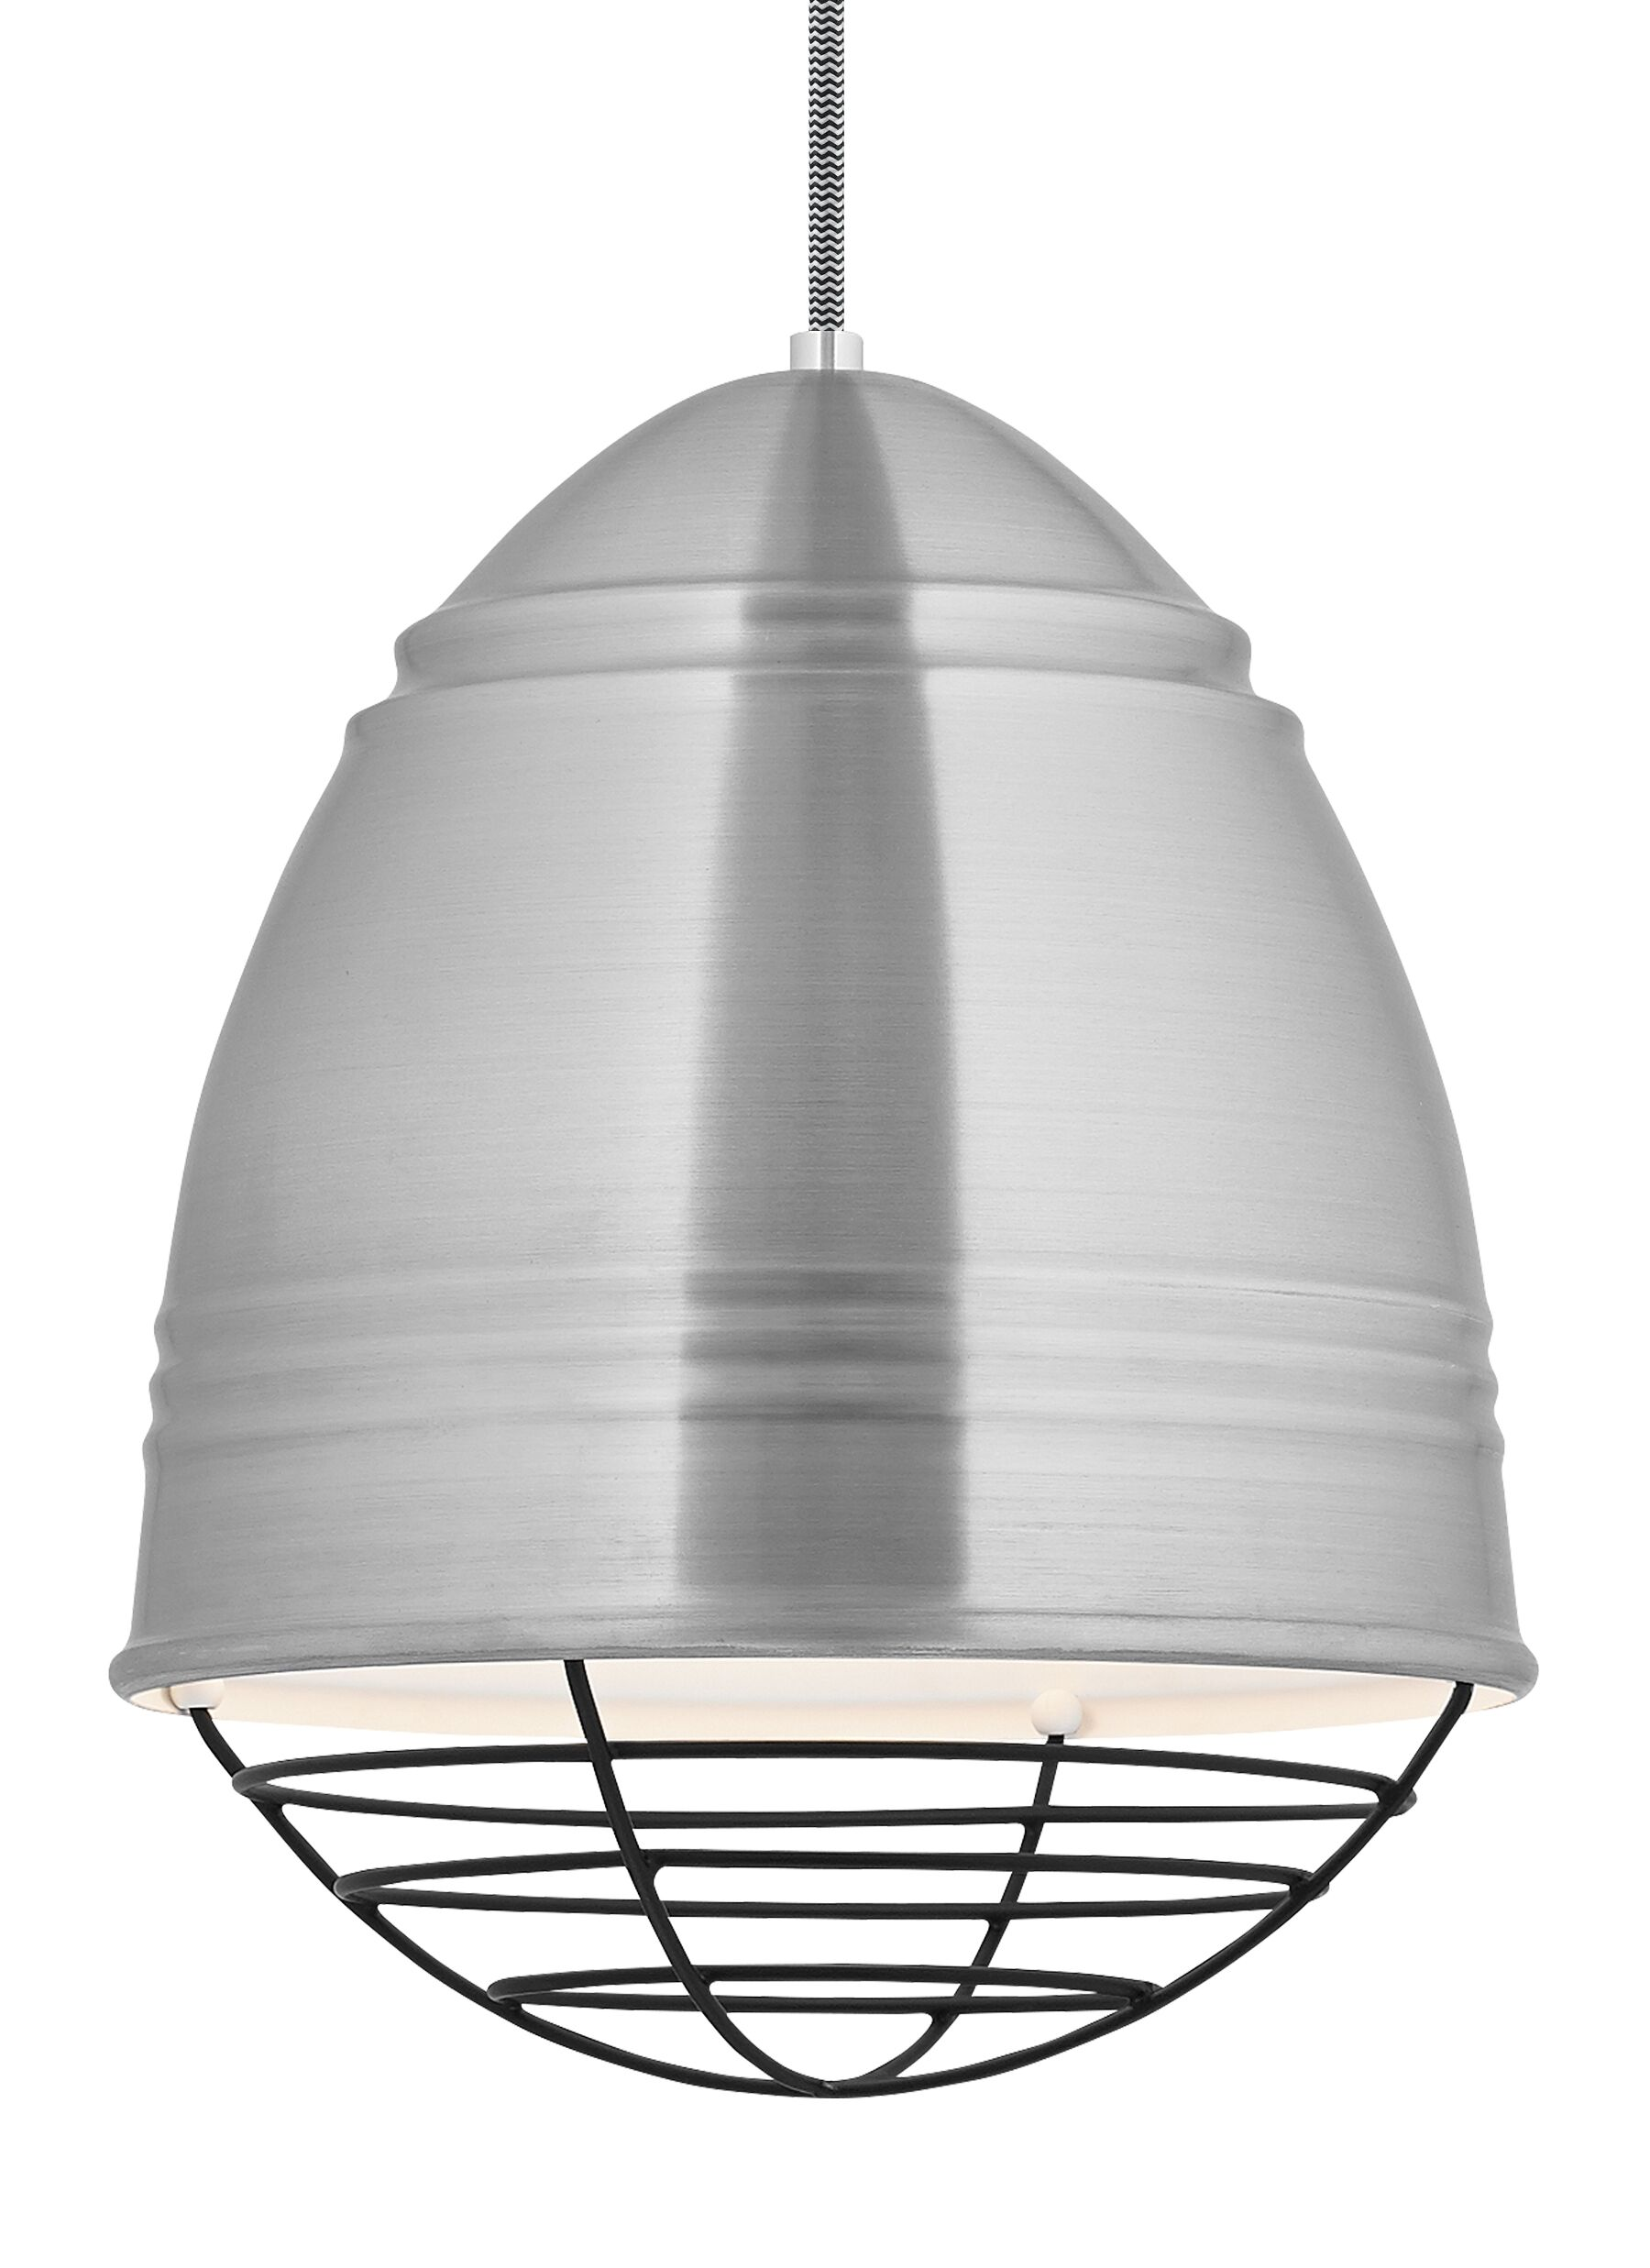 Loft 1-Light Bell Pendant Shade Color: Black, Bulb Type: LED, Finish: Rubberized�White/White